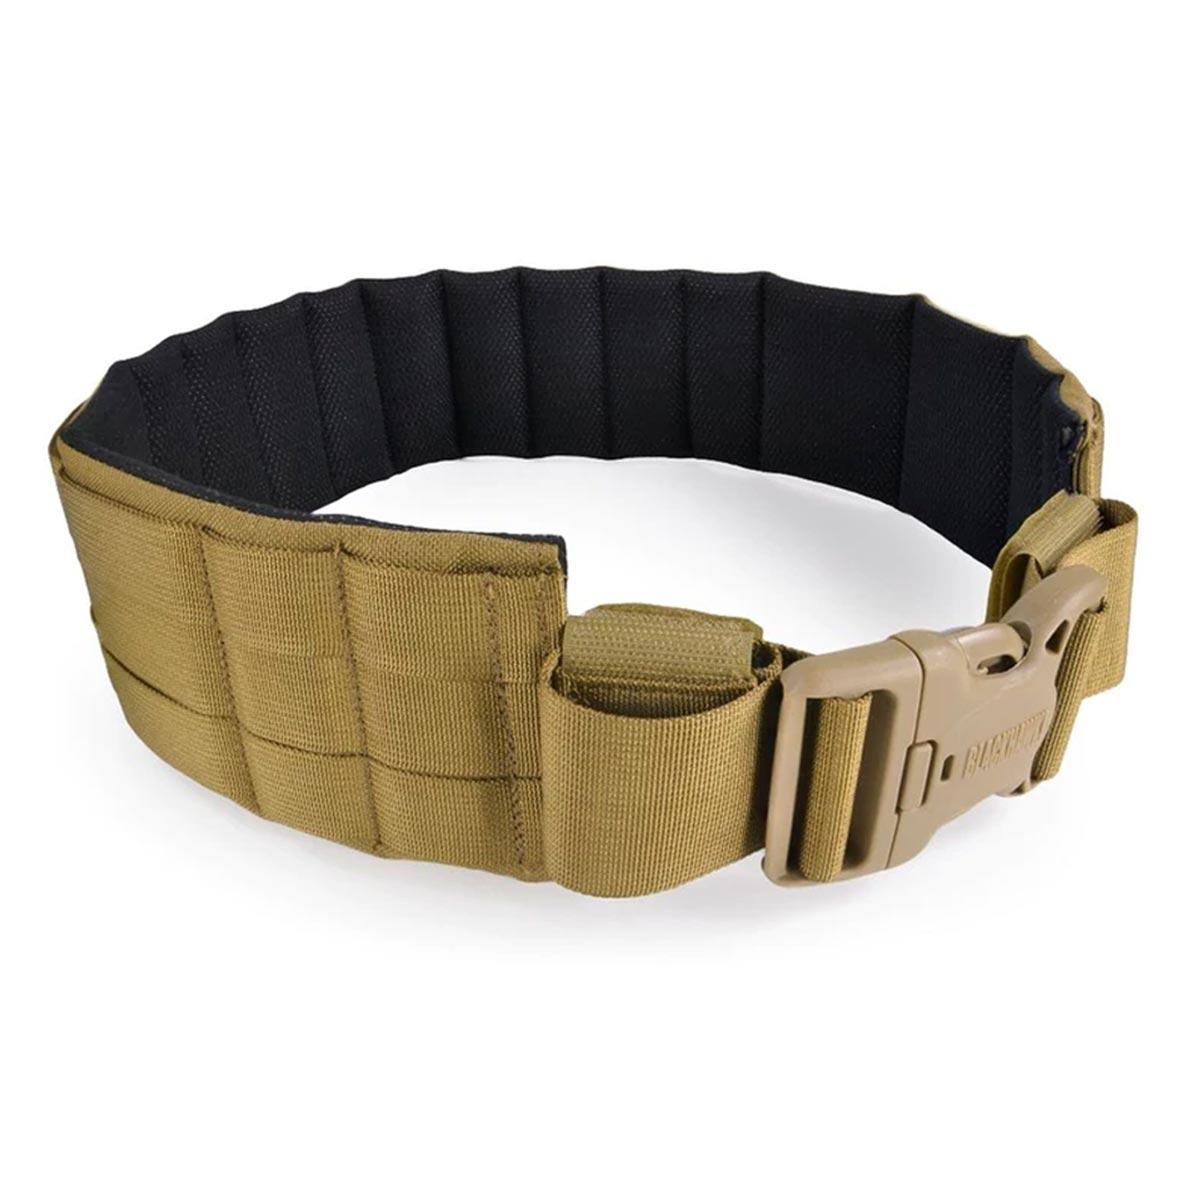 Blackhawk Padded Patrol Belt & Pad Strike_Coyote Tan.jpg